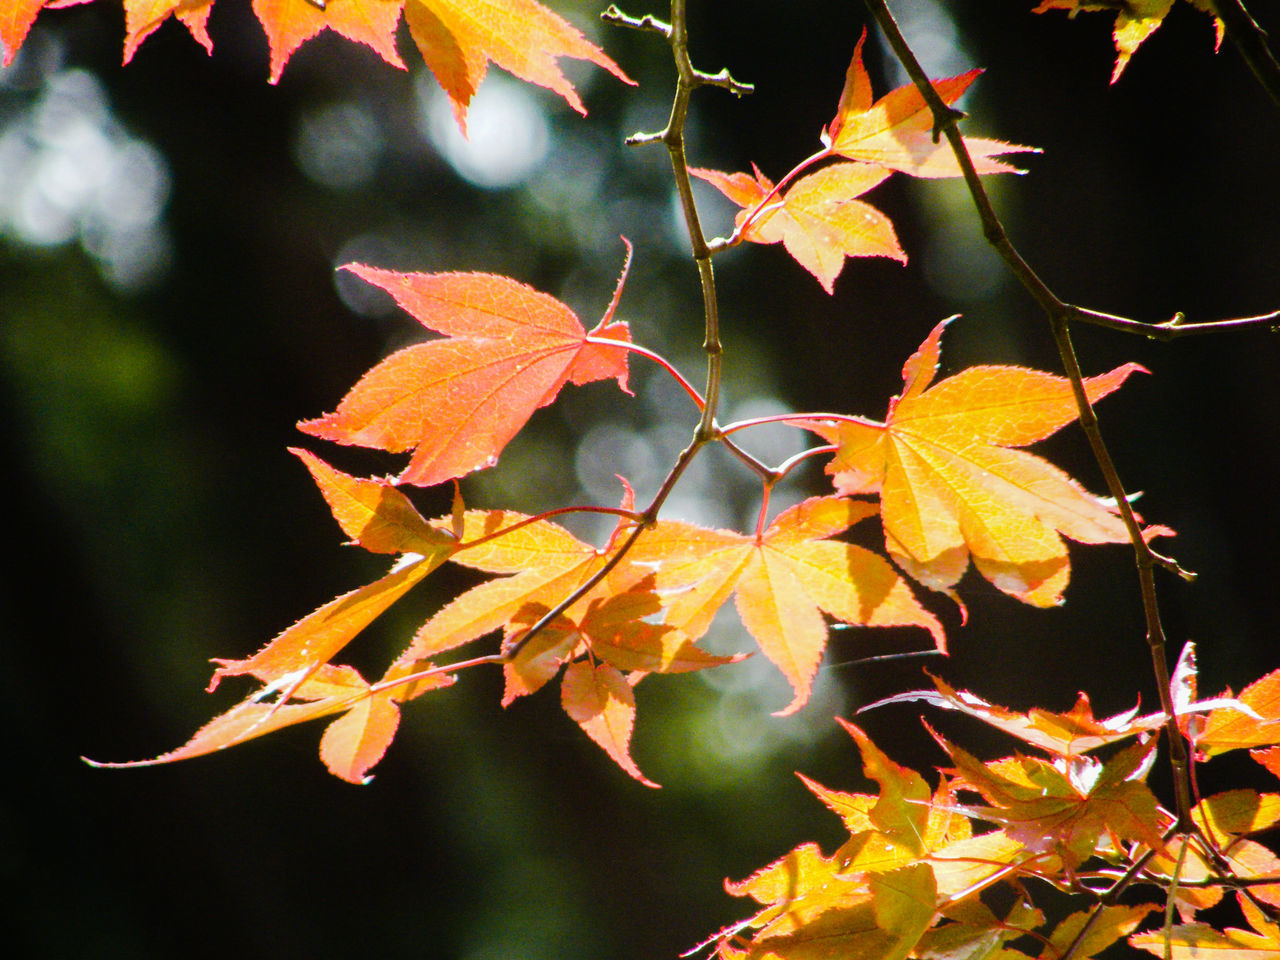 leaf, autumn, change, nature, growth, beauty in nature, focus on foreground, outdoors, day, maple leaf, no people, close-up, maple, fragility, branch, freshness